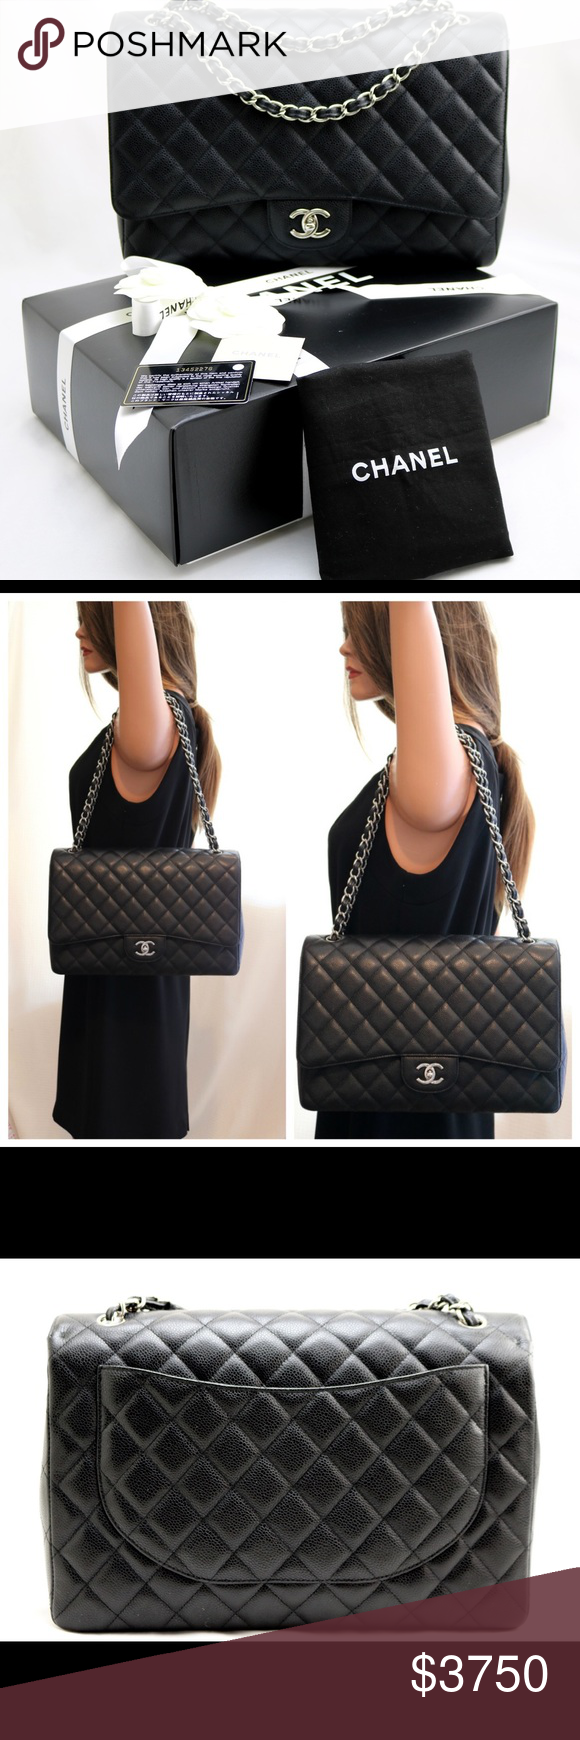 9576f1aba488ff Chanel XL Jumbo Maxi Caviar Classic Flap Bag Brand New 100% Authentic Chanel  XL Jumbo Maxi Black Caviar Leather Classic Single Flap Bag CHANEL Bags  Shoulder ...